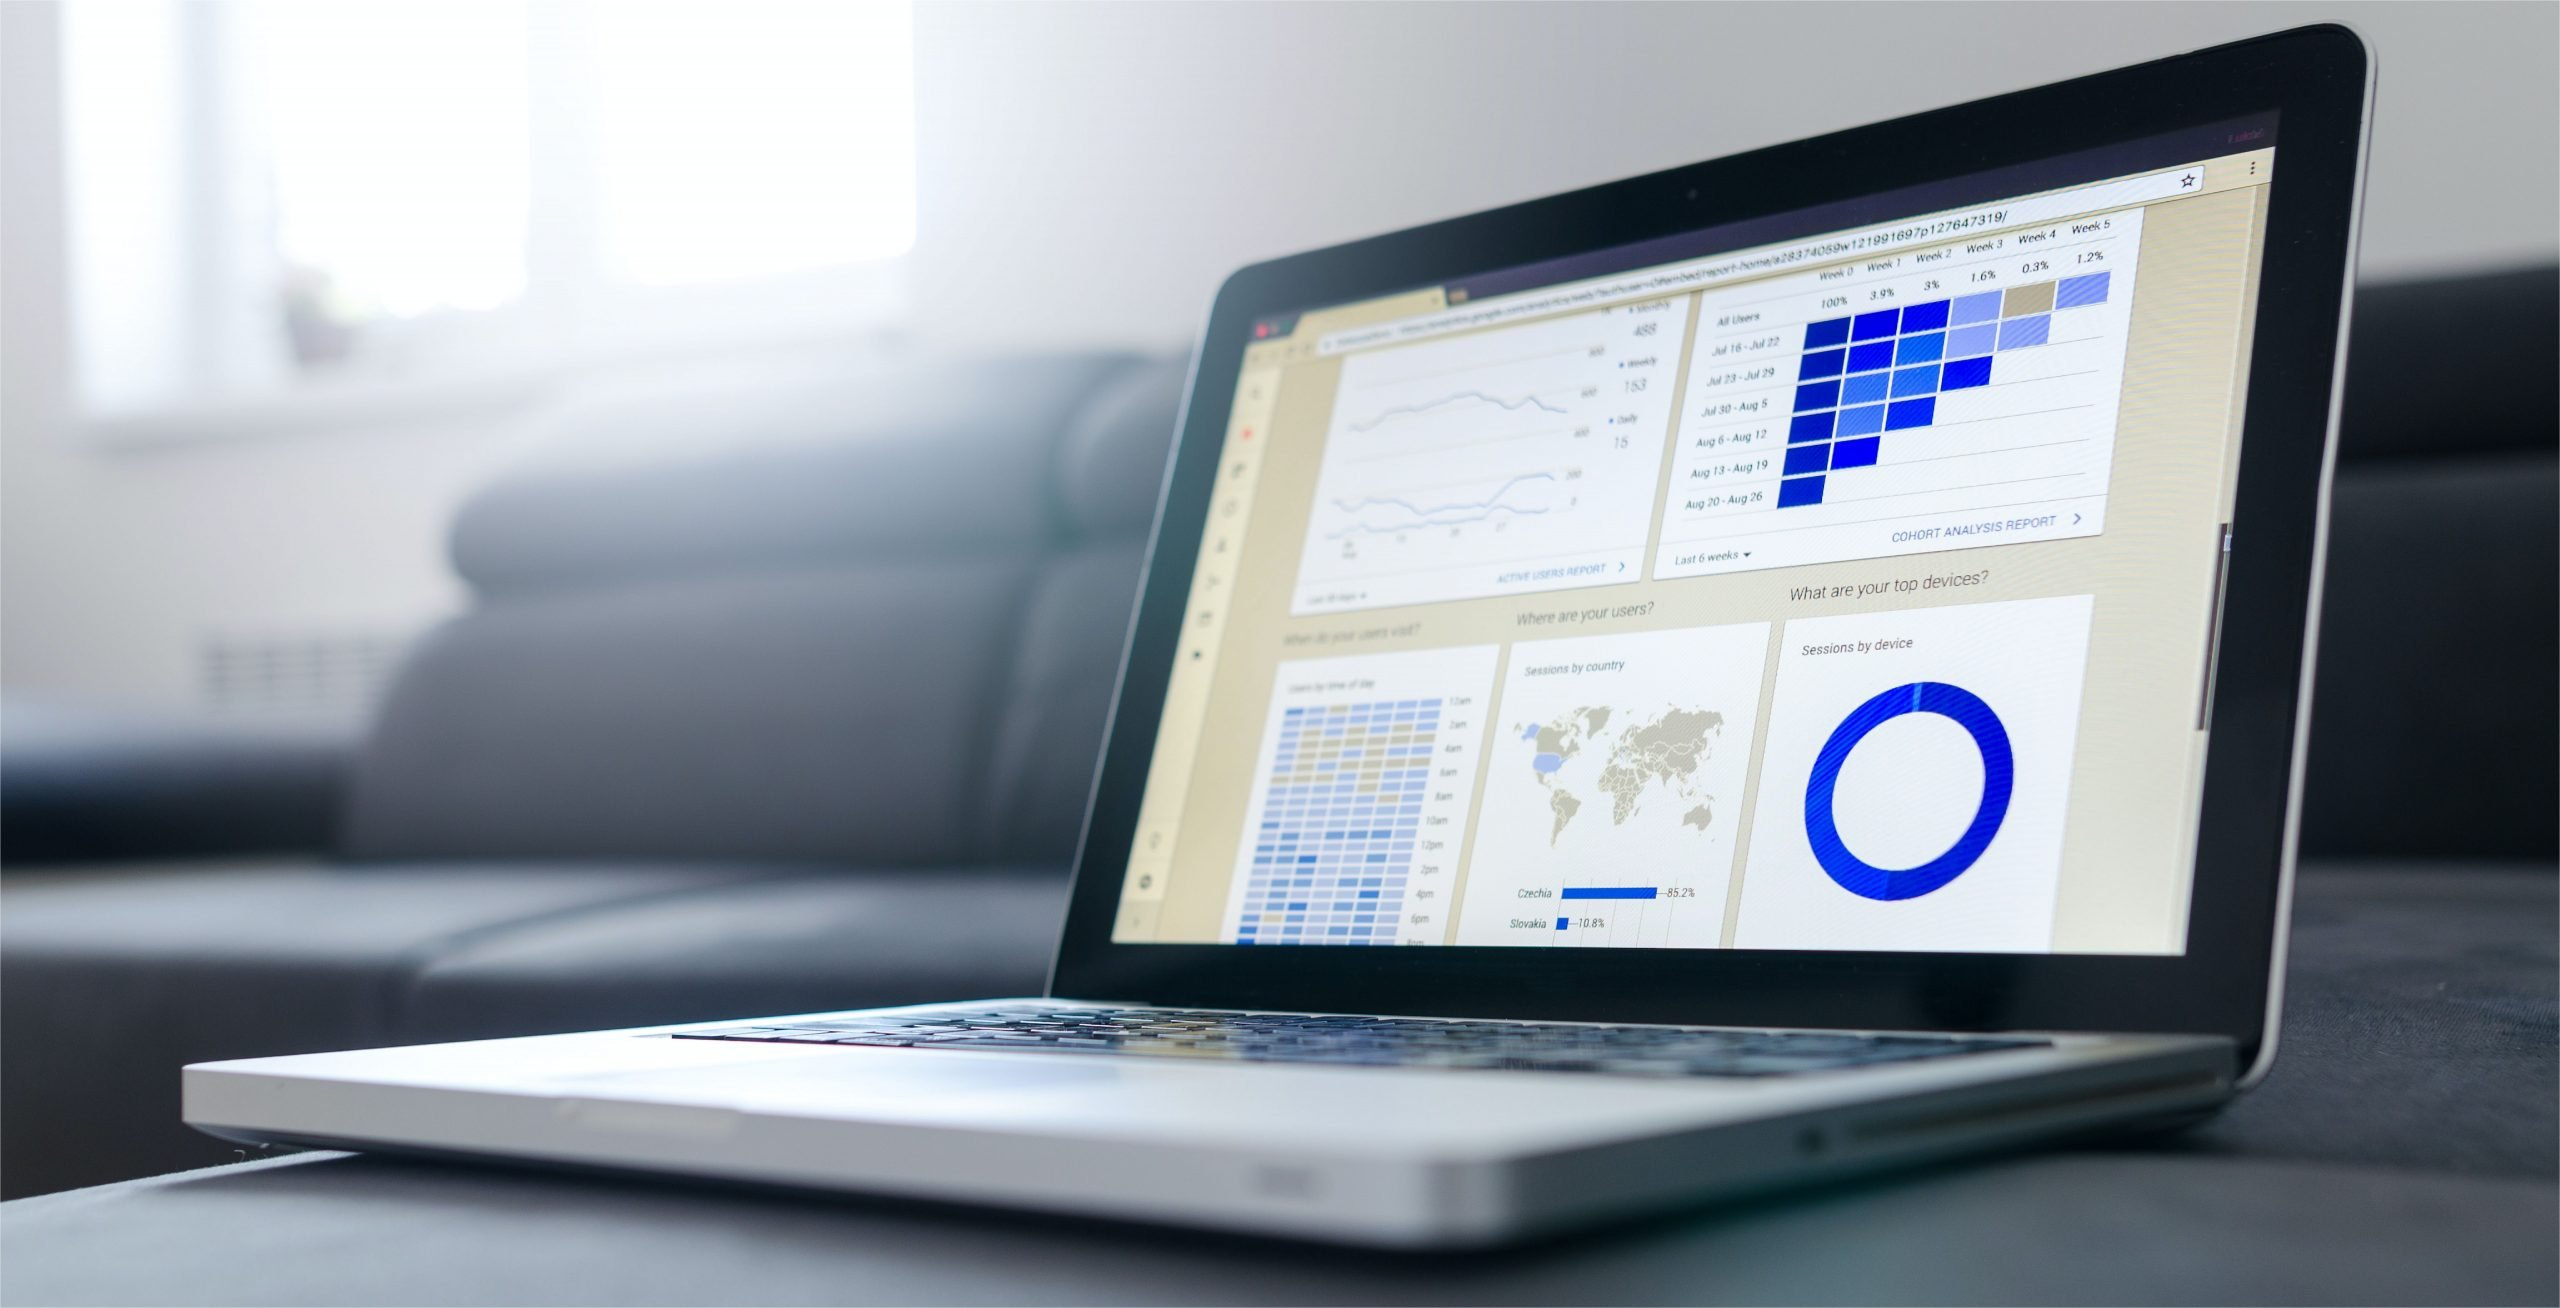 A photo of a laptop with various graphs displayed